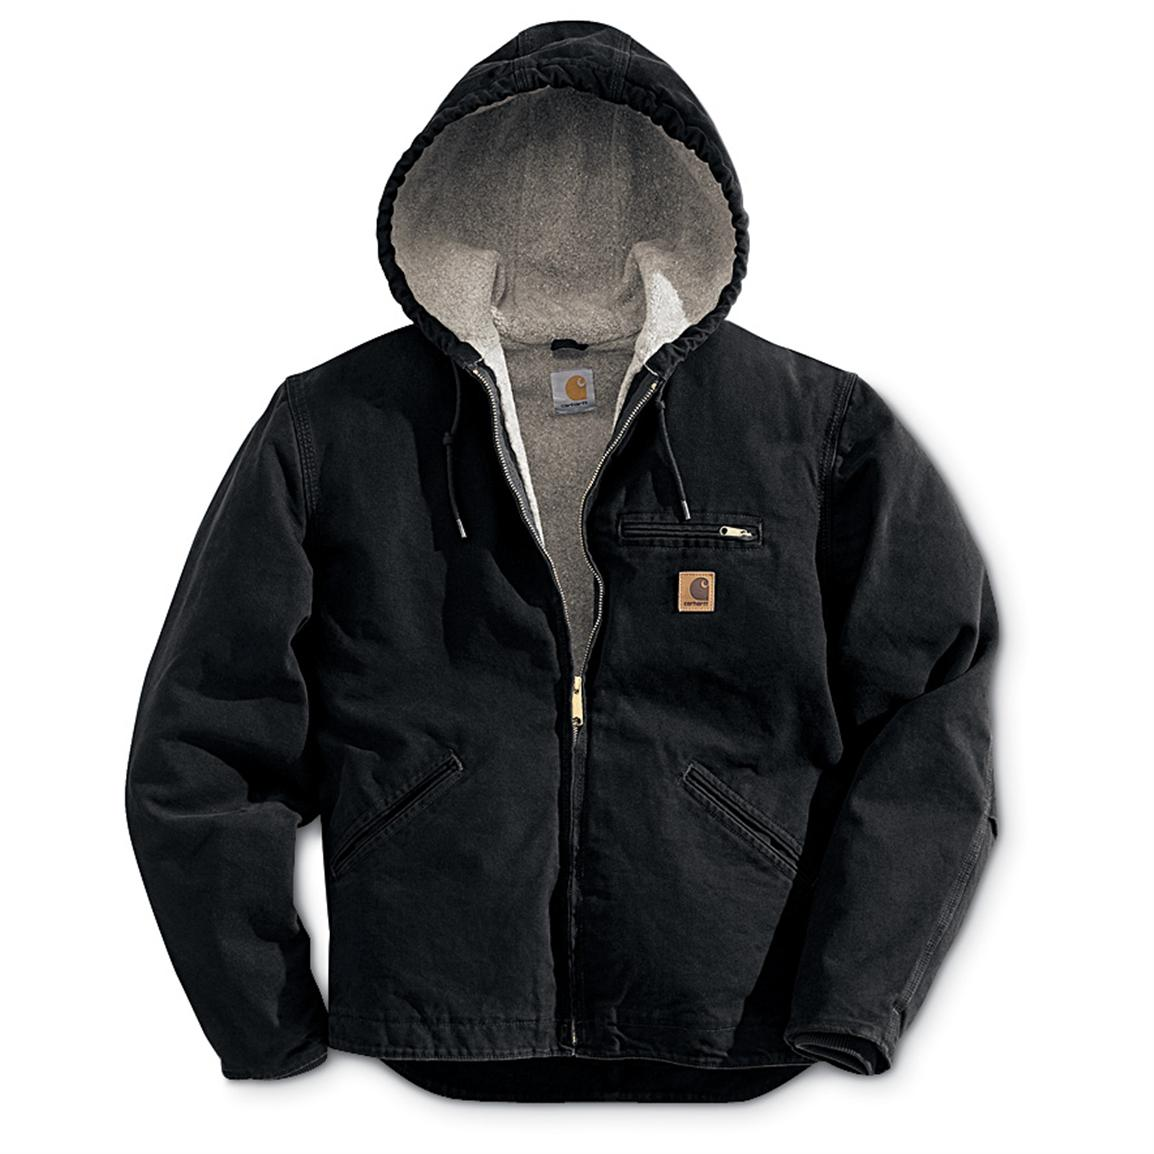 Carhartt Sandstone Sierrra Hooded Workwear Jacket, Black